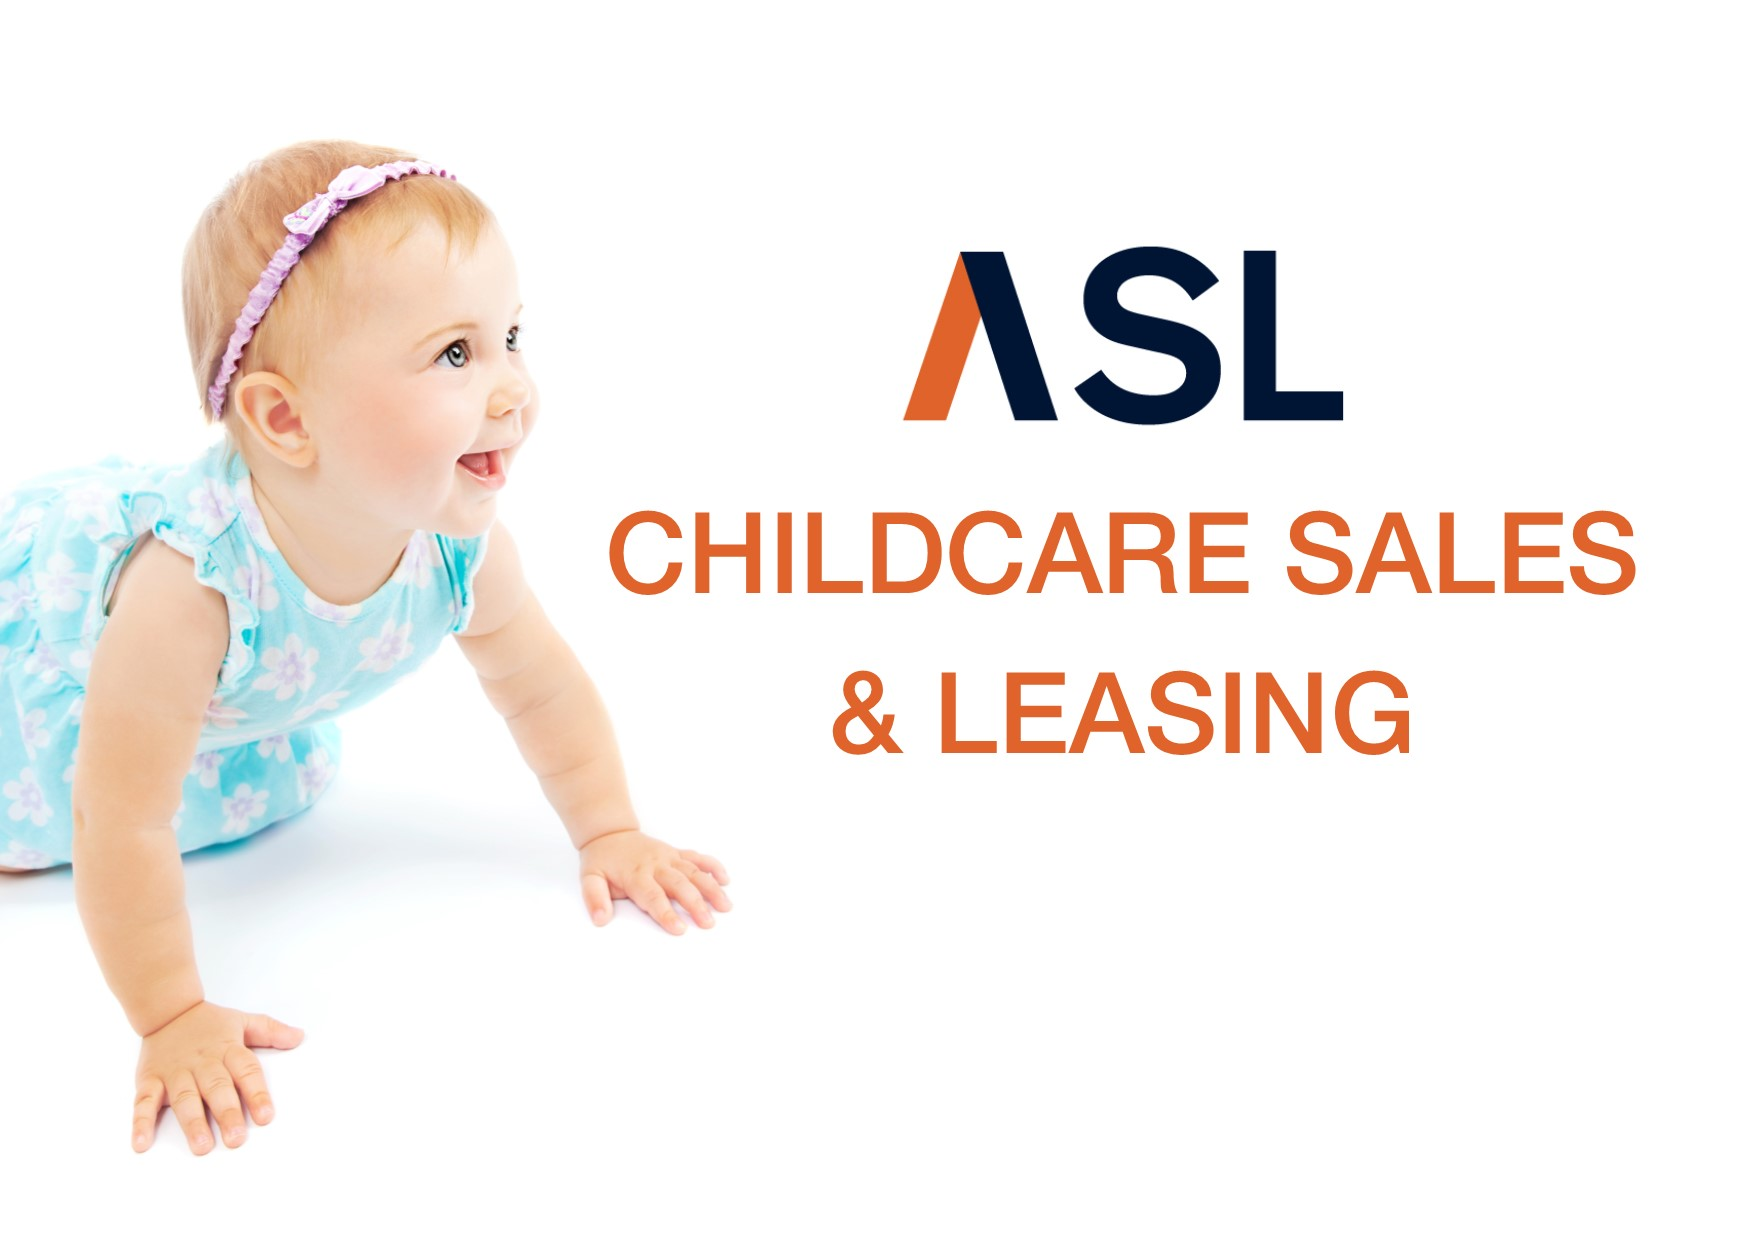 LARGE CHILD CARE CENTRE FOR SALE - QUEENSLAND